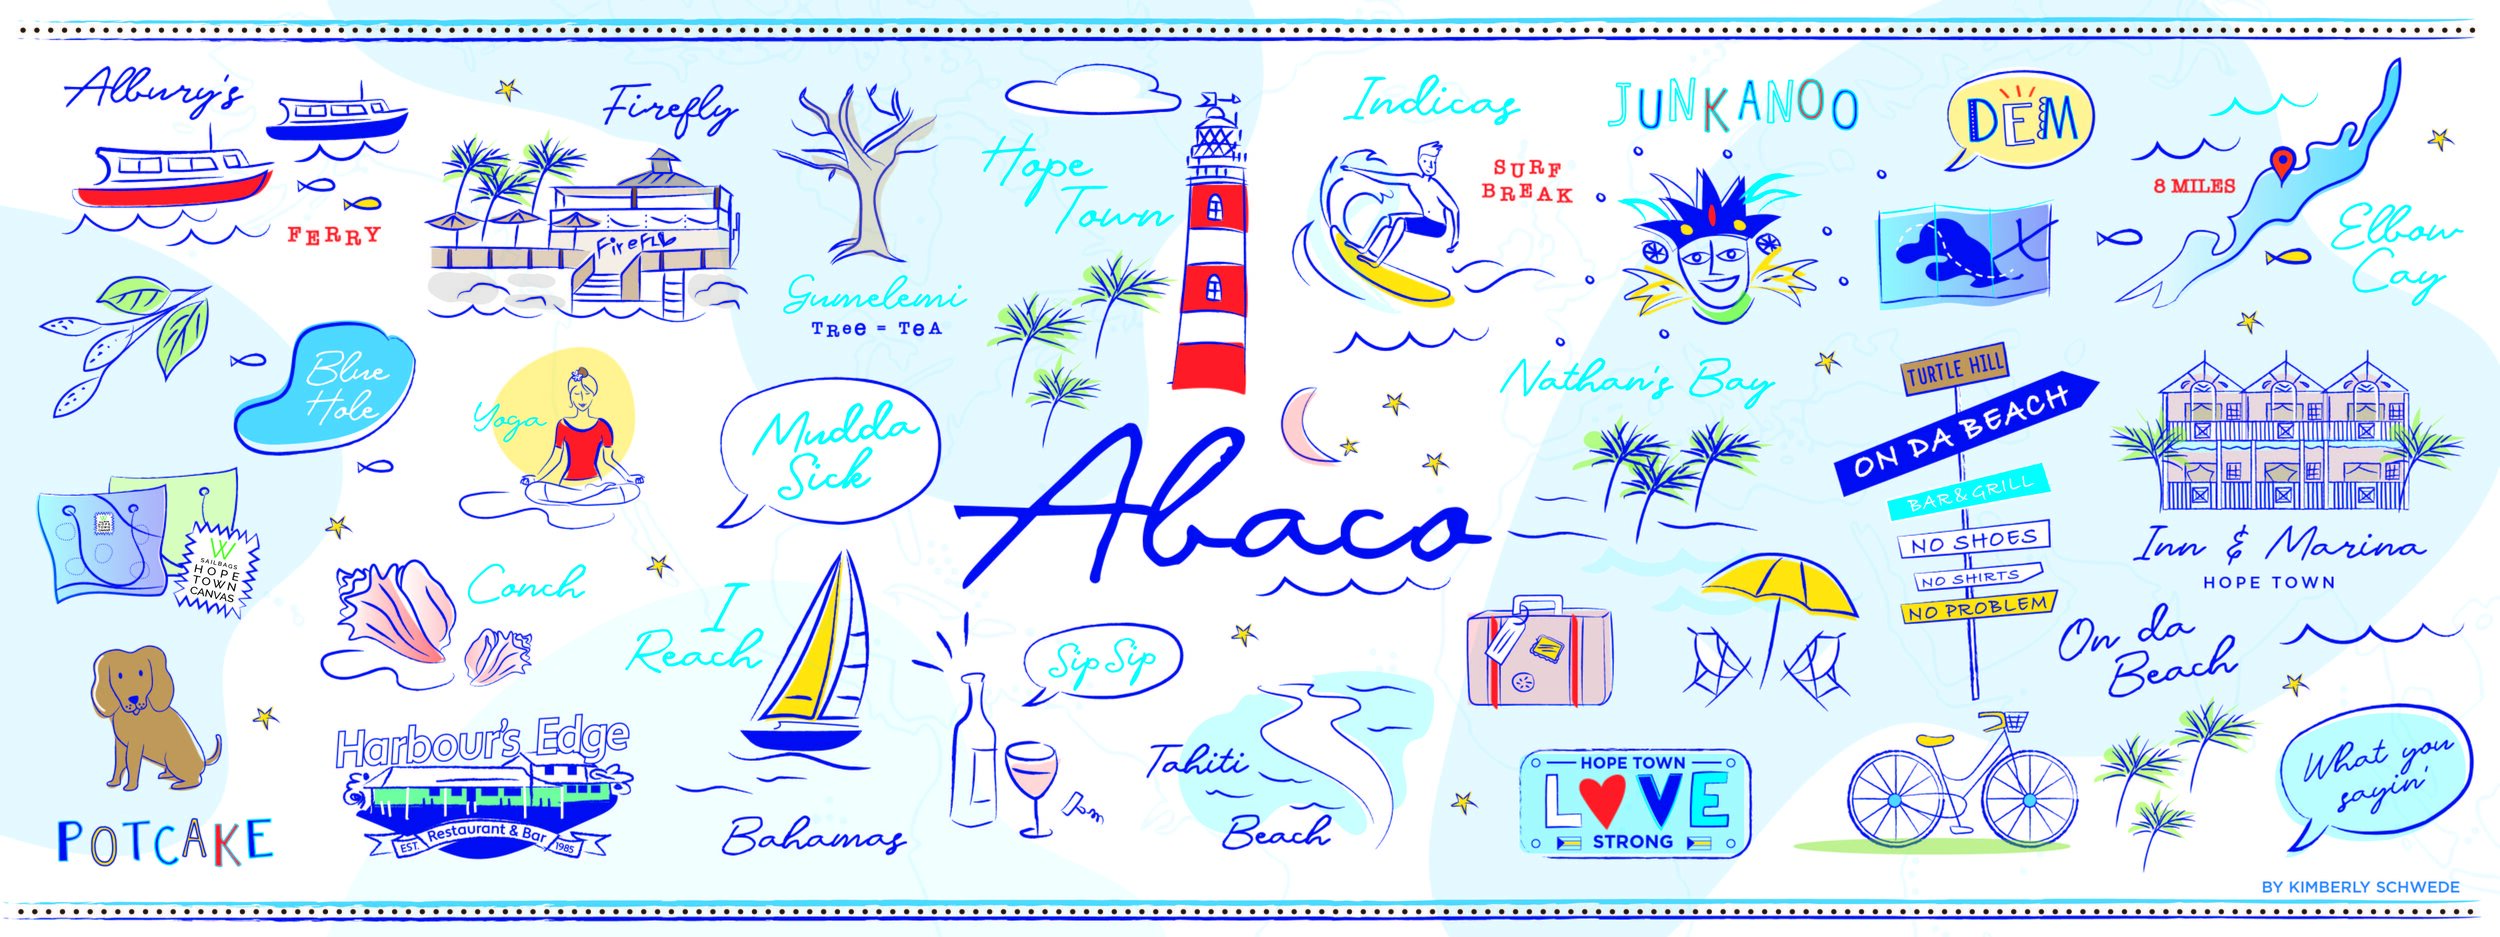 ABC's of Hope Town Illustration by Kimberly Schwede